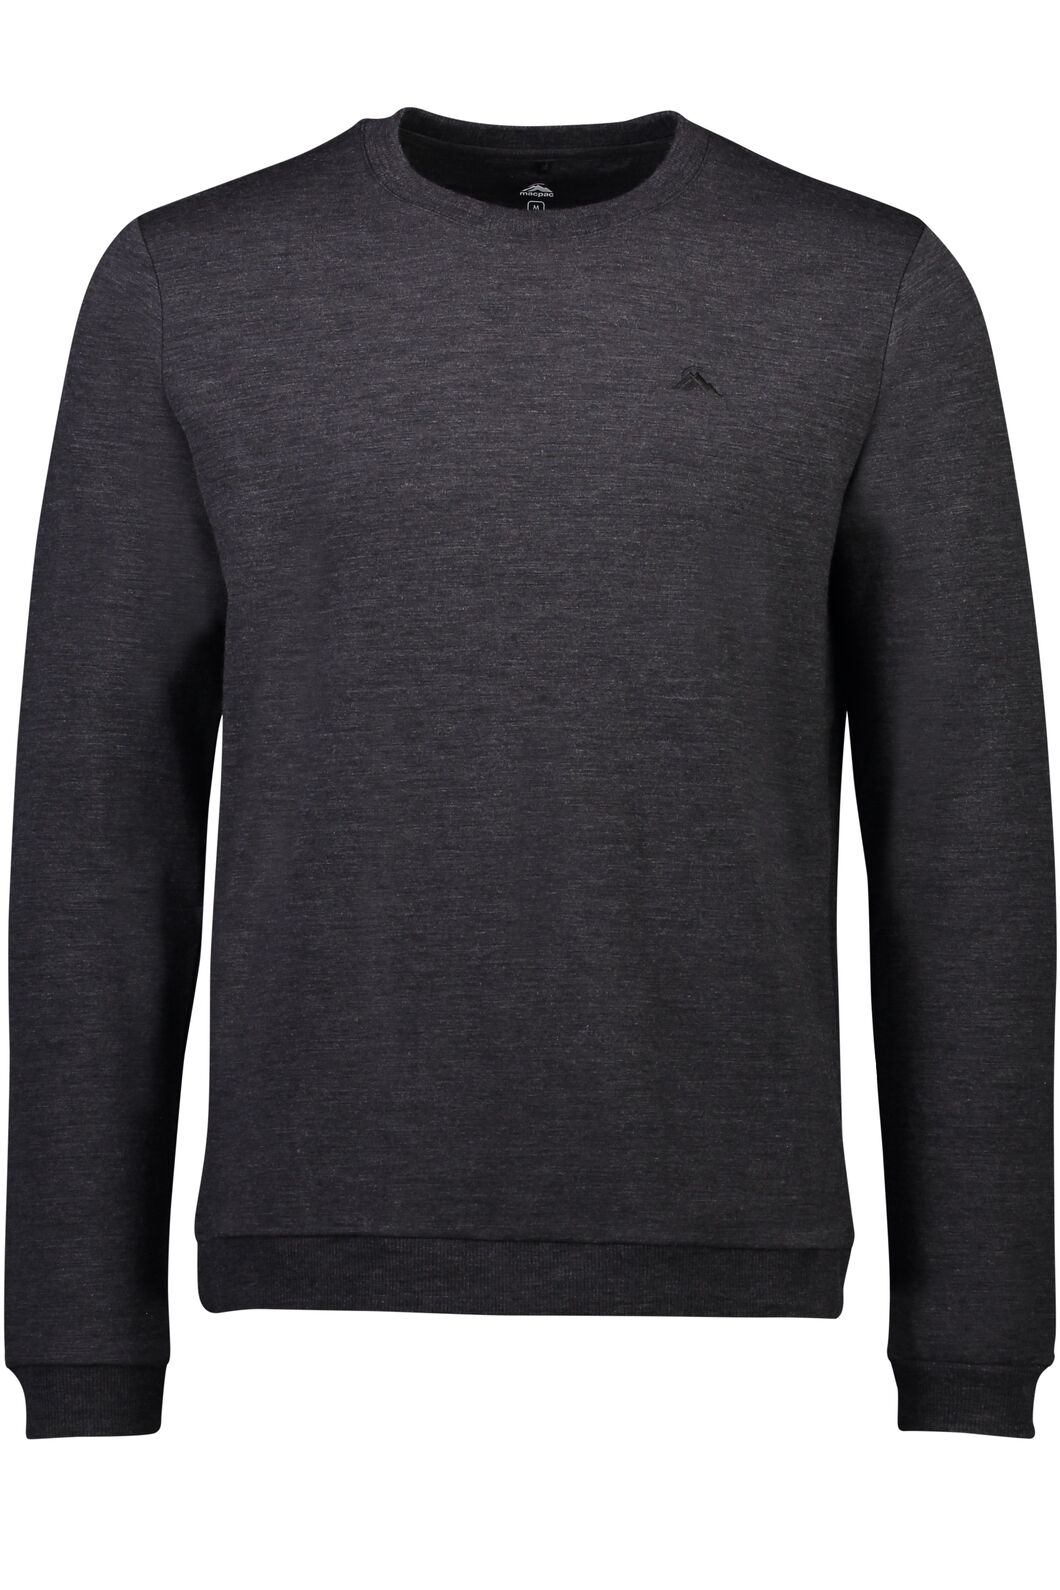 Macpac 280 Merino Long Sleeve Crew - Men's, Charcoal Marle, hi-res